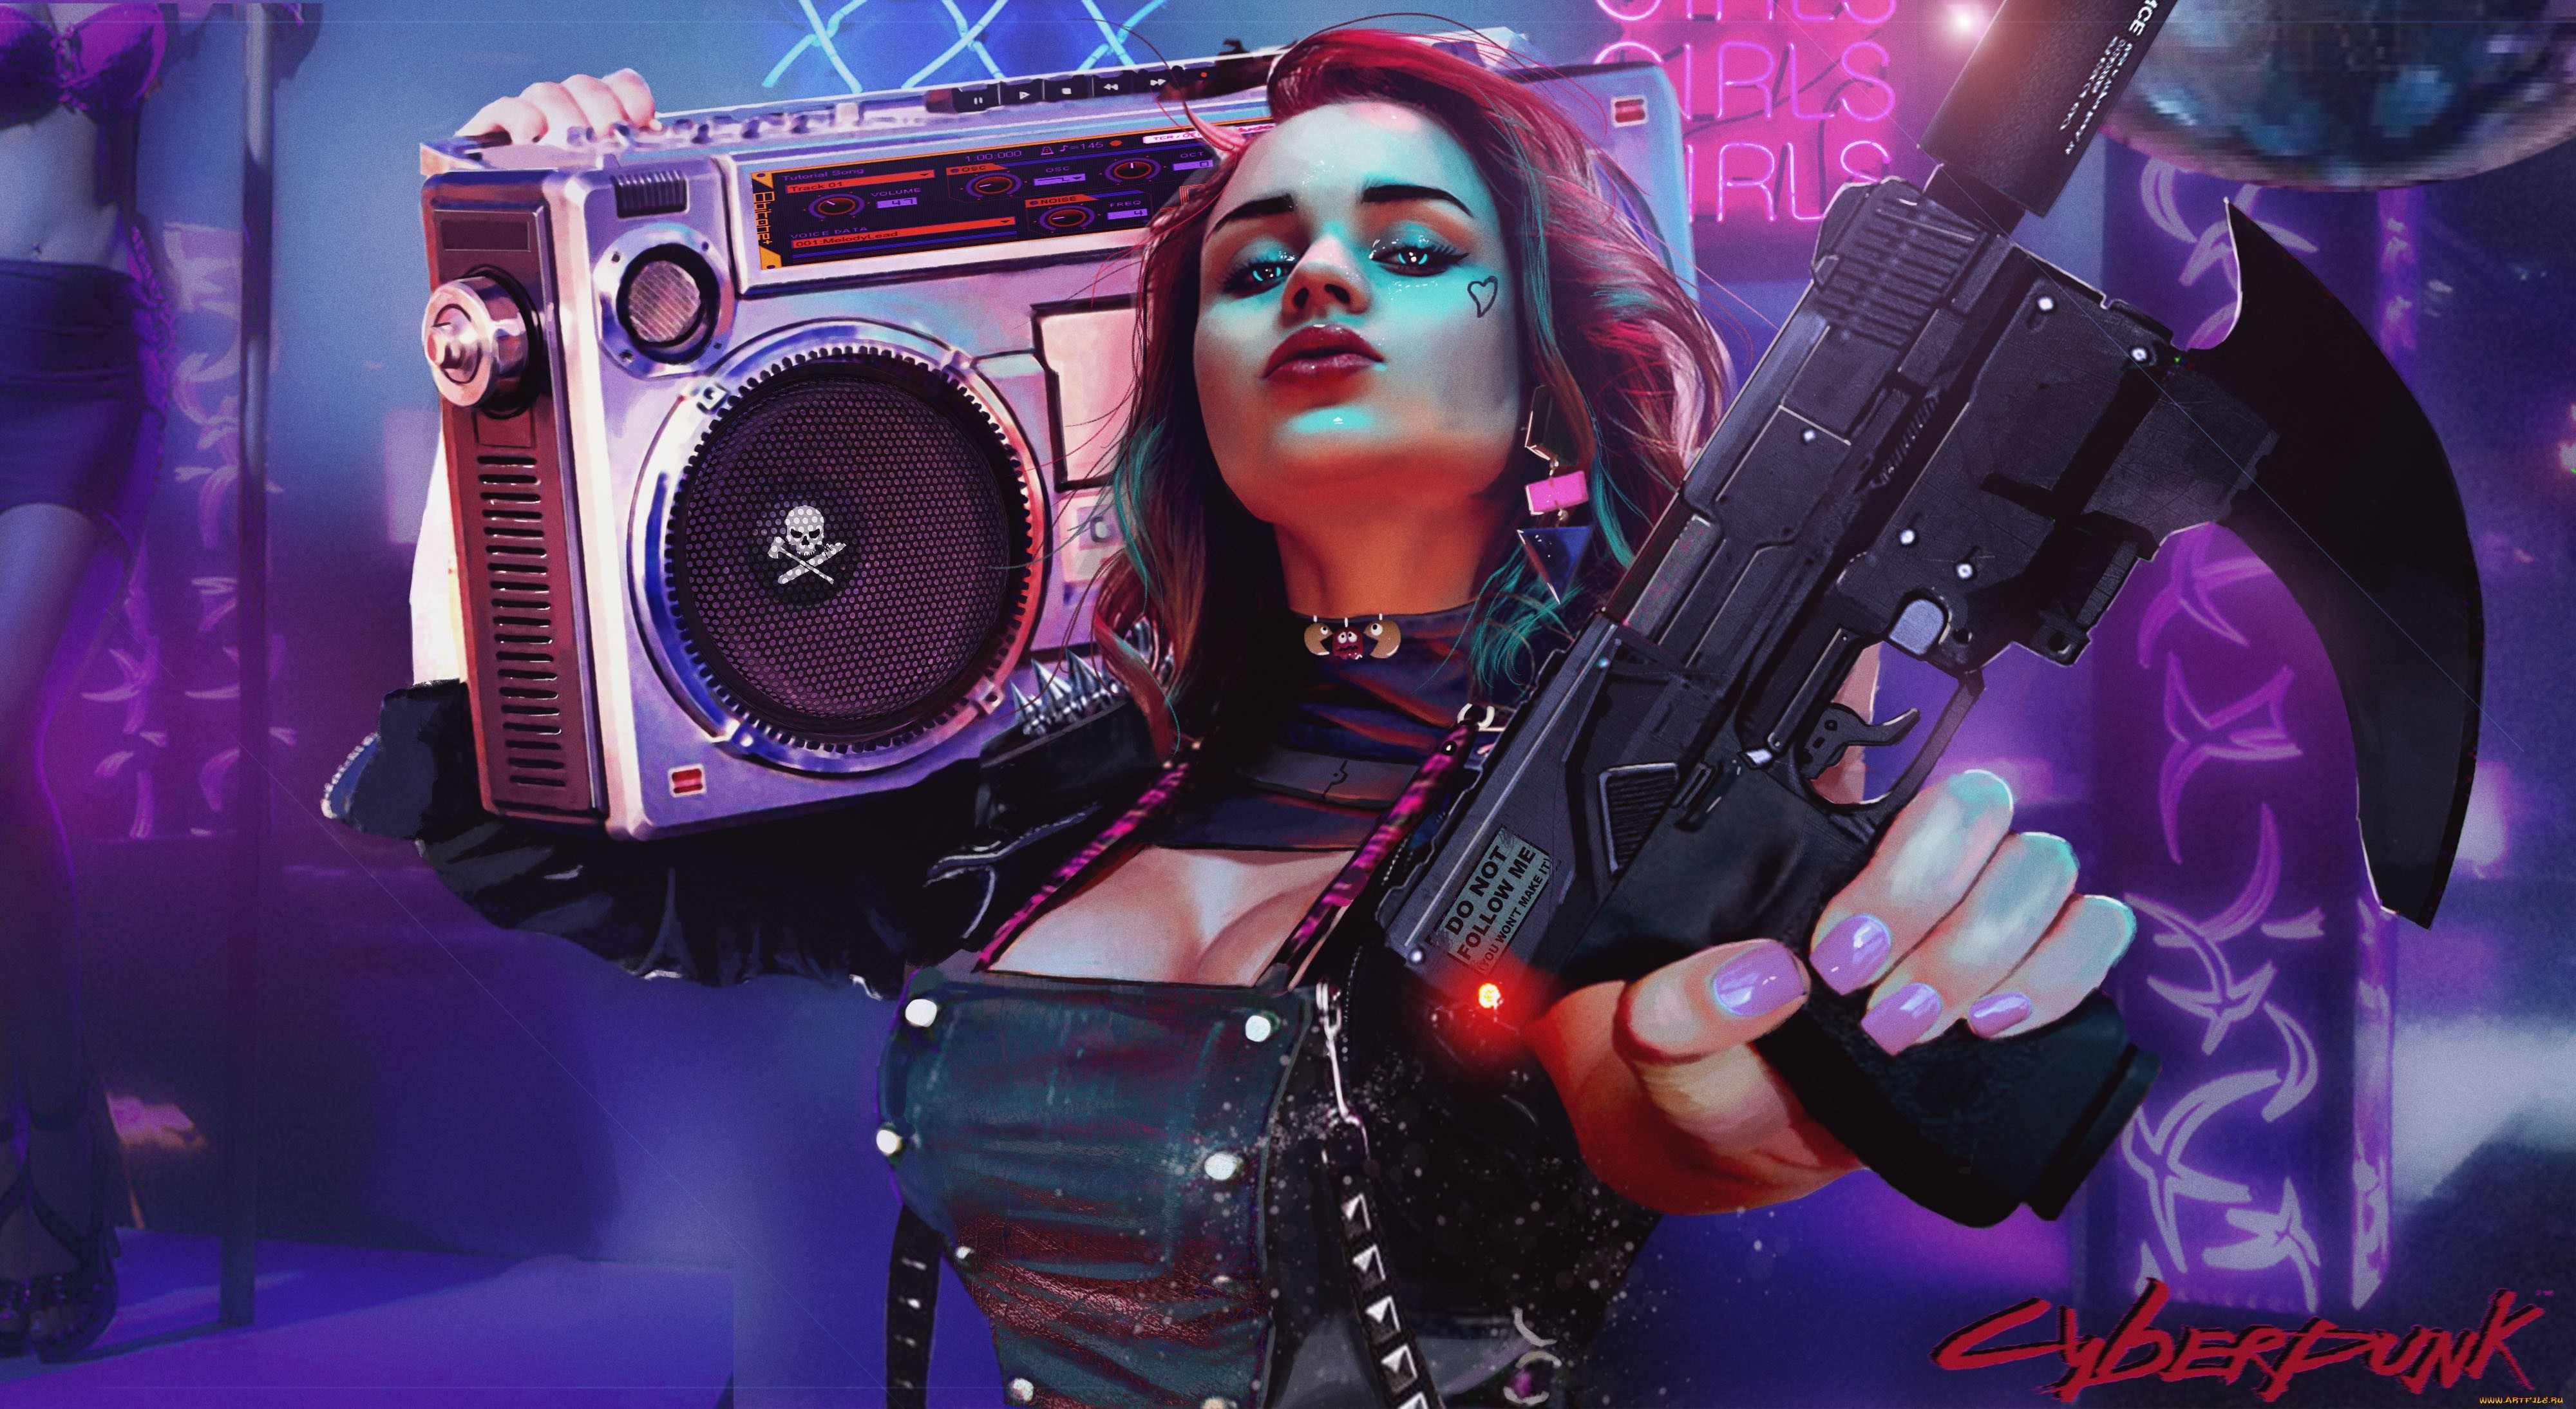 Cyberpunk Girl Wallpapers Wallpaper Cave